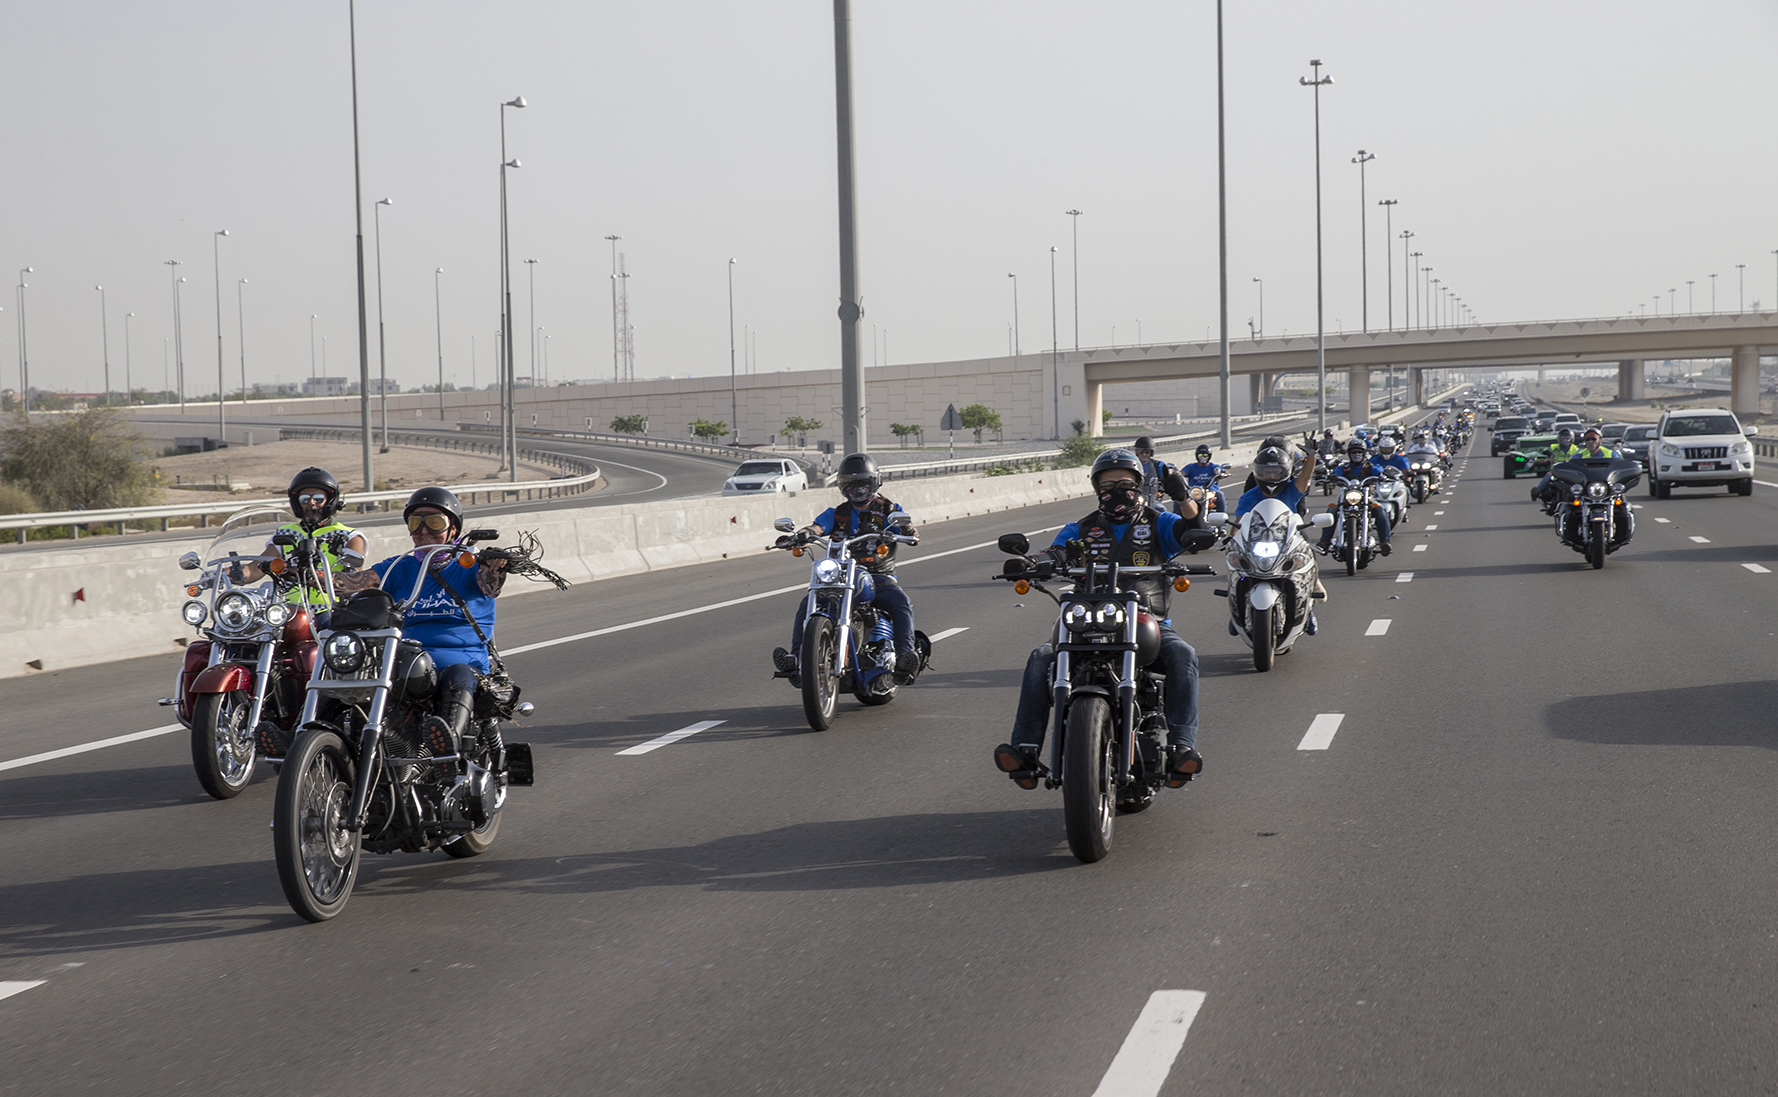 etihad aviation group organises motorbike parade to support autism awareness month 3